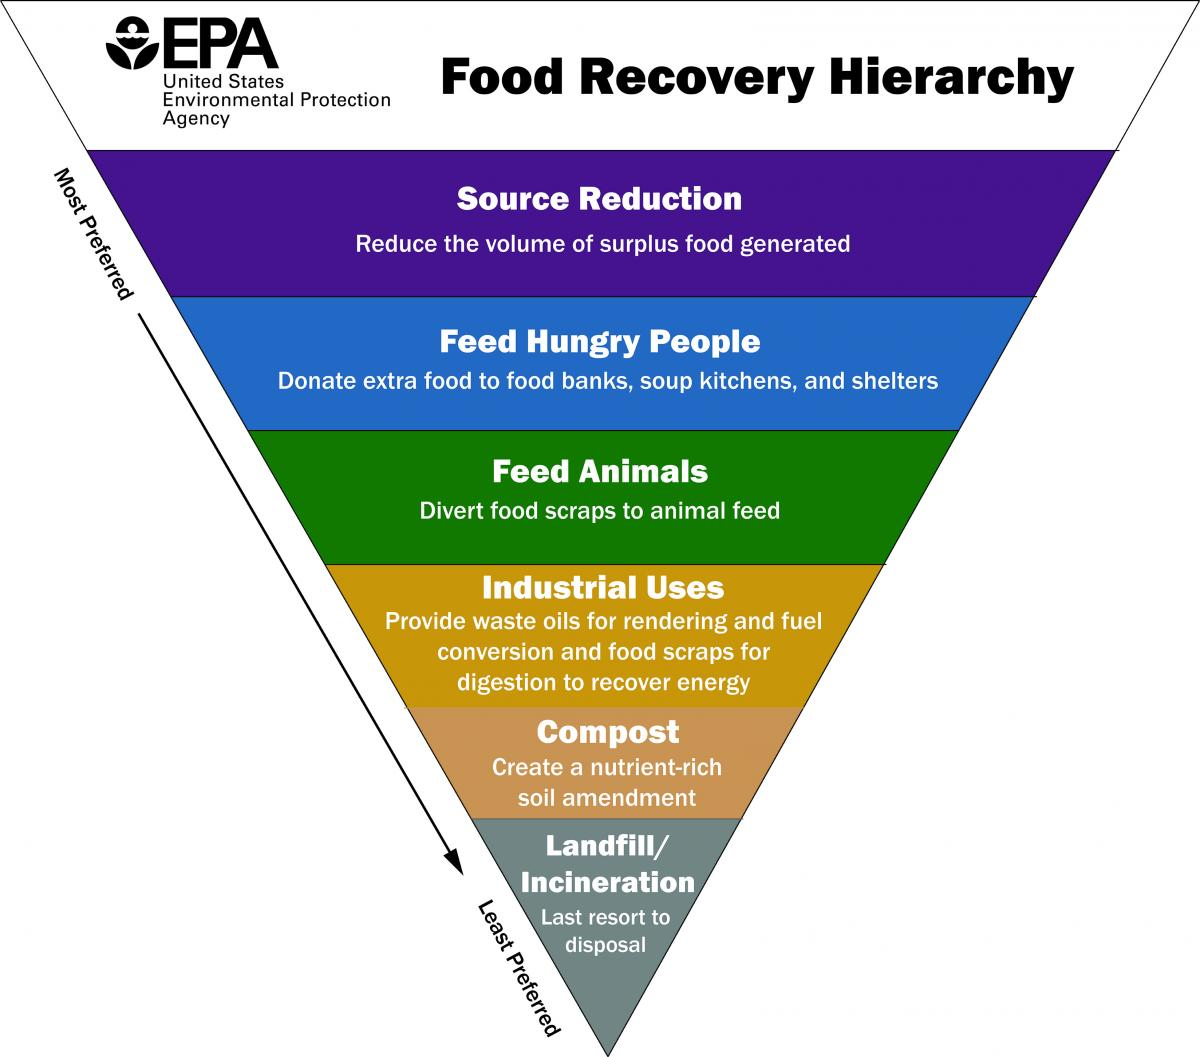 EPA Food Recovery Hierarchy chart